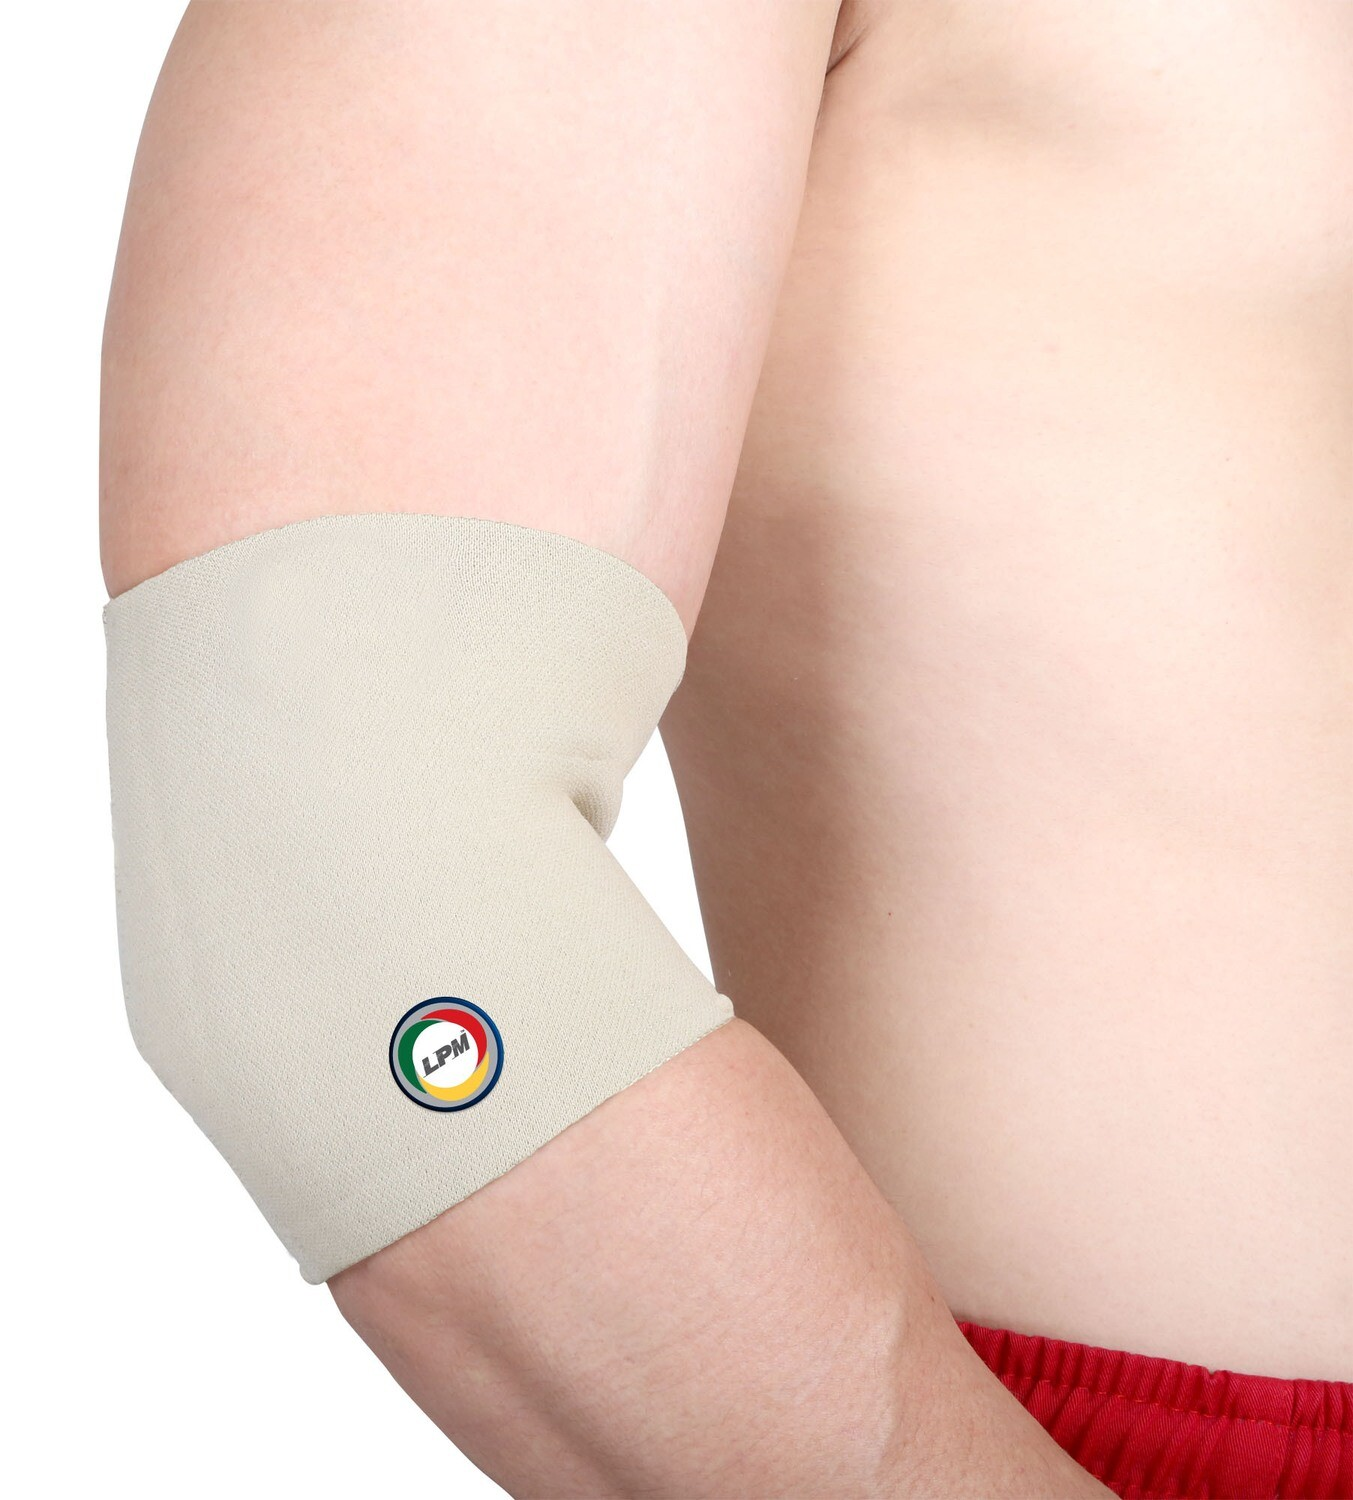 LPM ELBOW SUPPORT